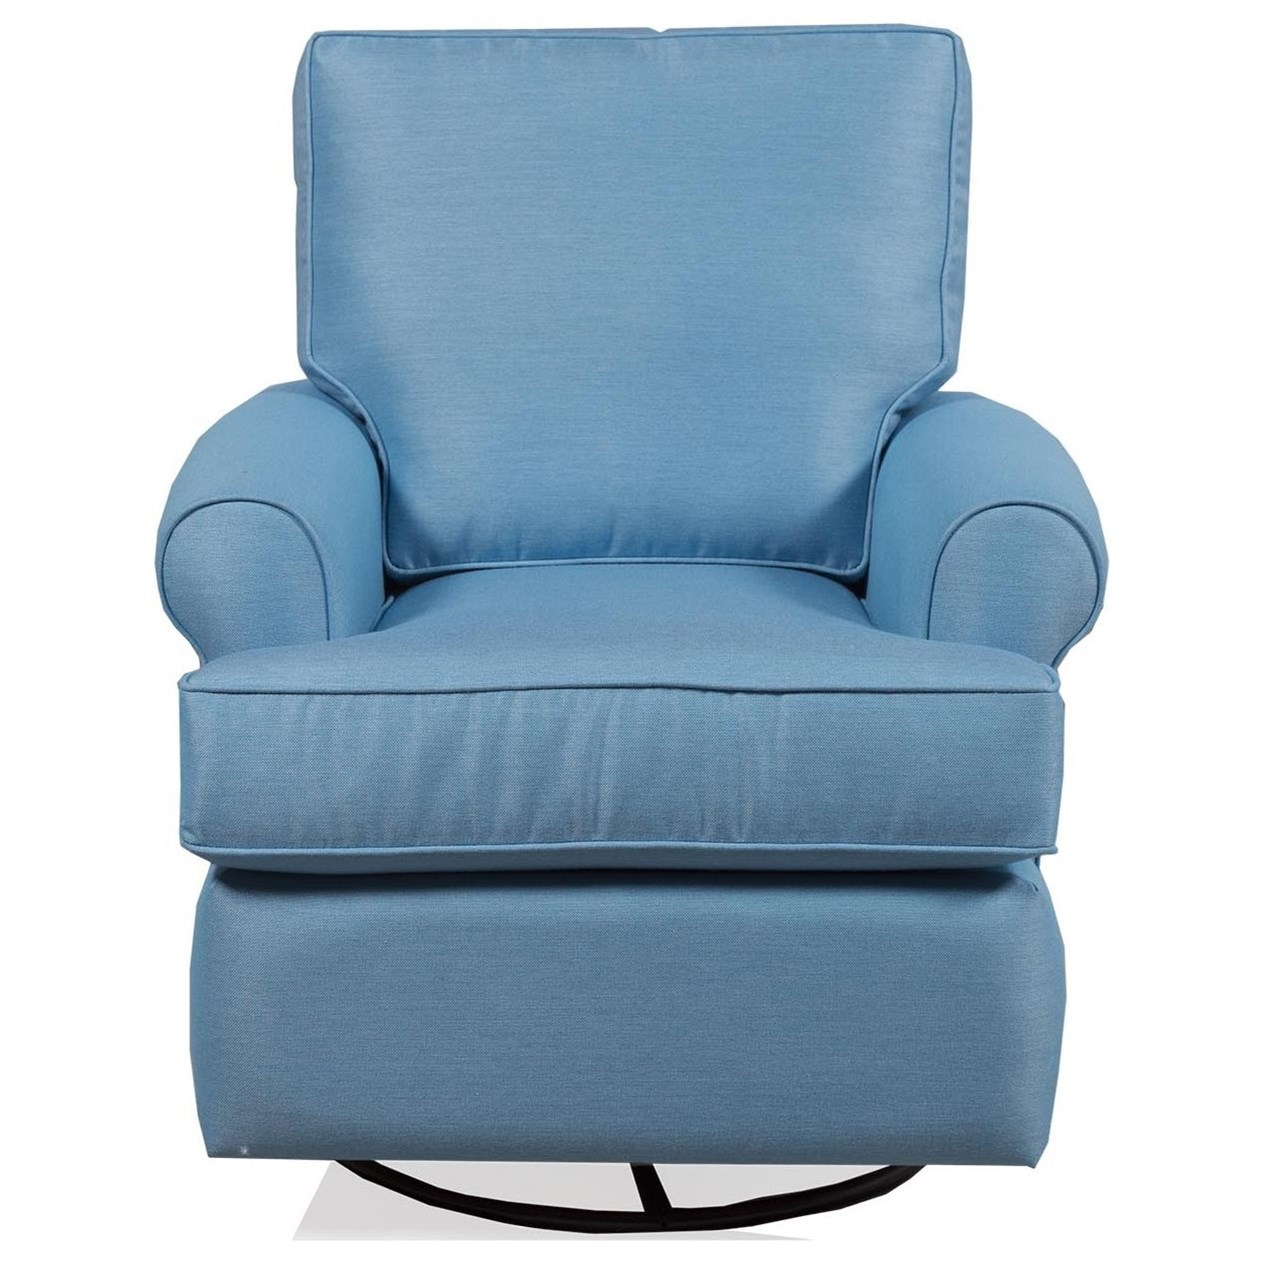 SG121 Swivel Glider Chair by Capris Furniture at Baer's Furniture